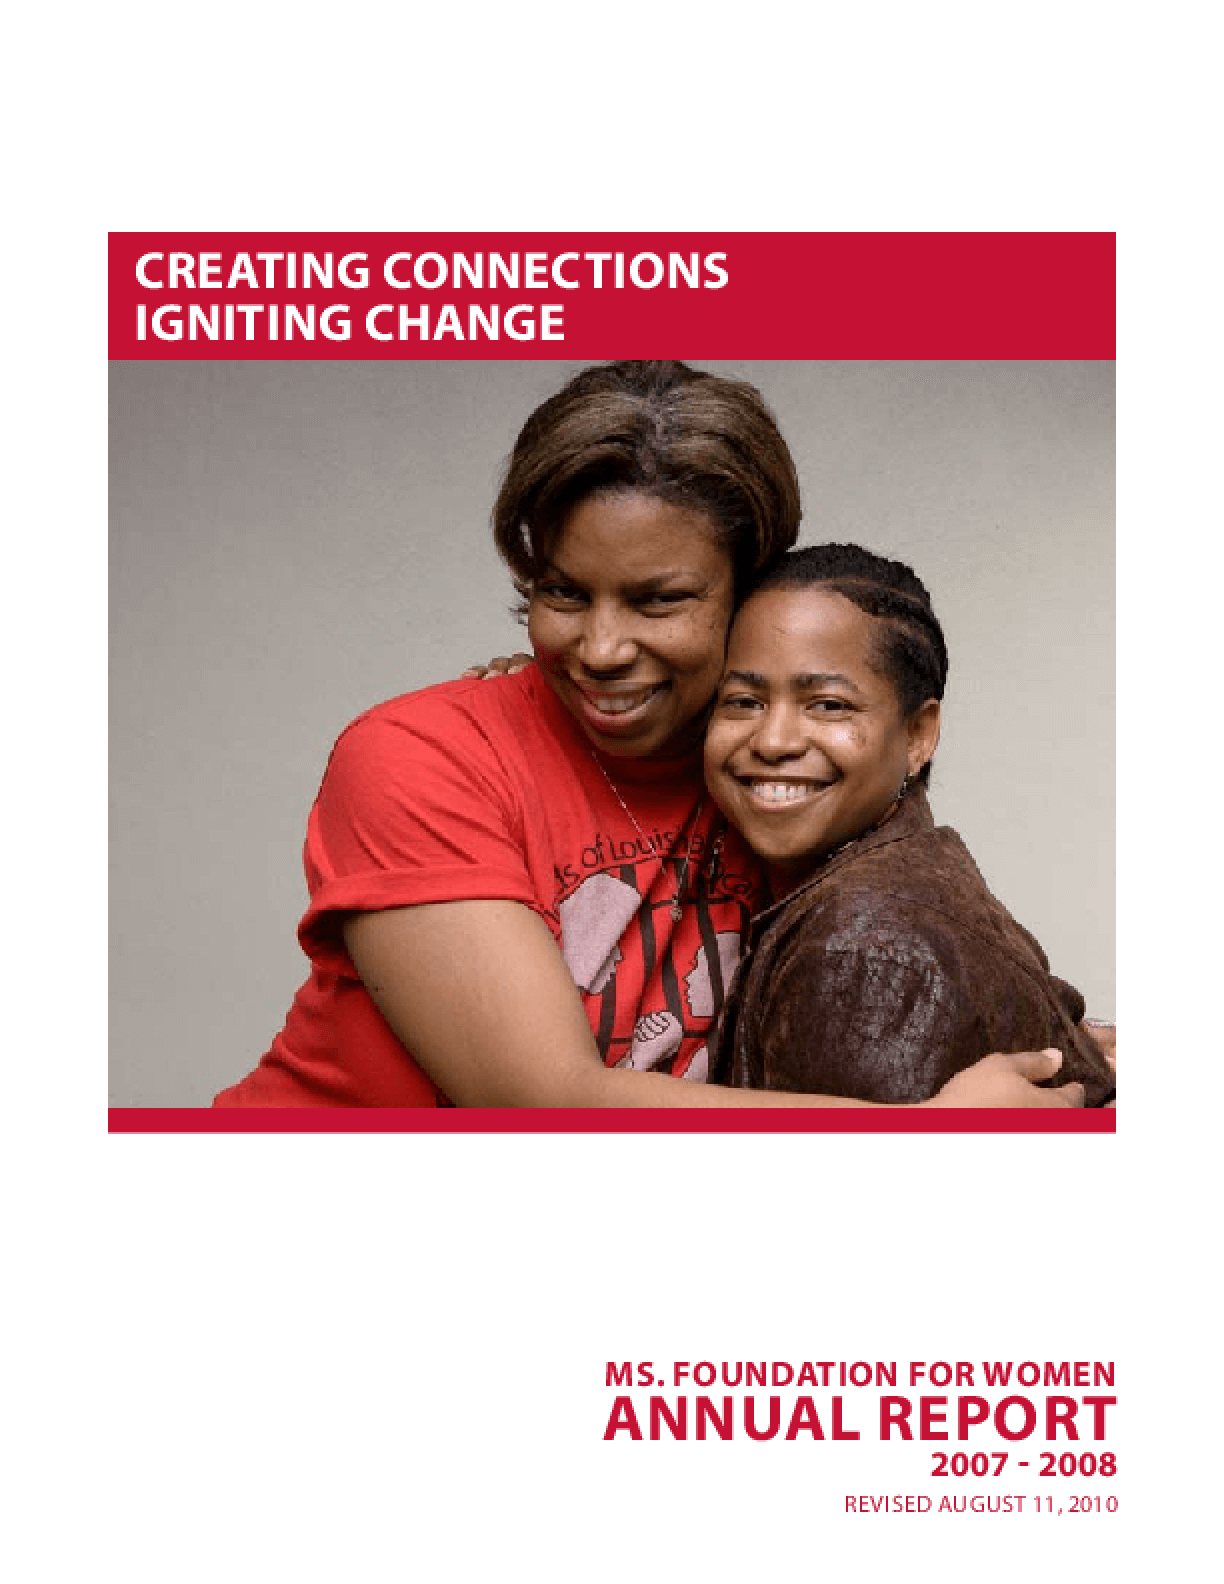 Ms. Foundation for Women, 2007-2008 Annual Report